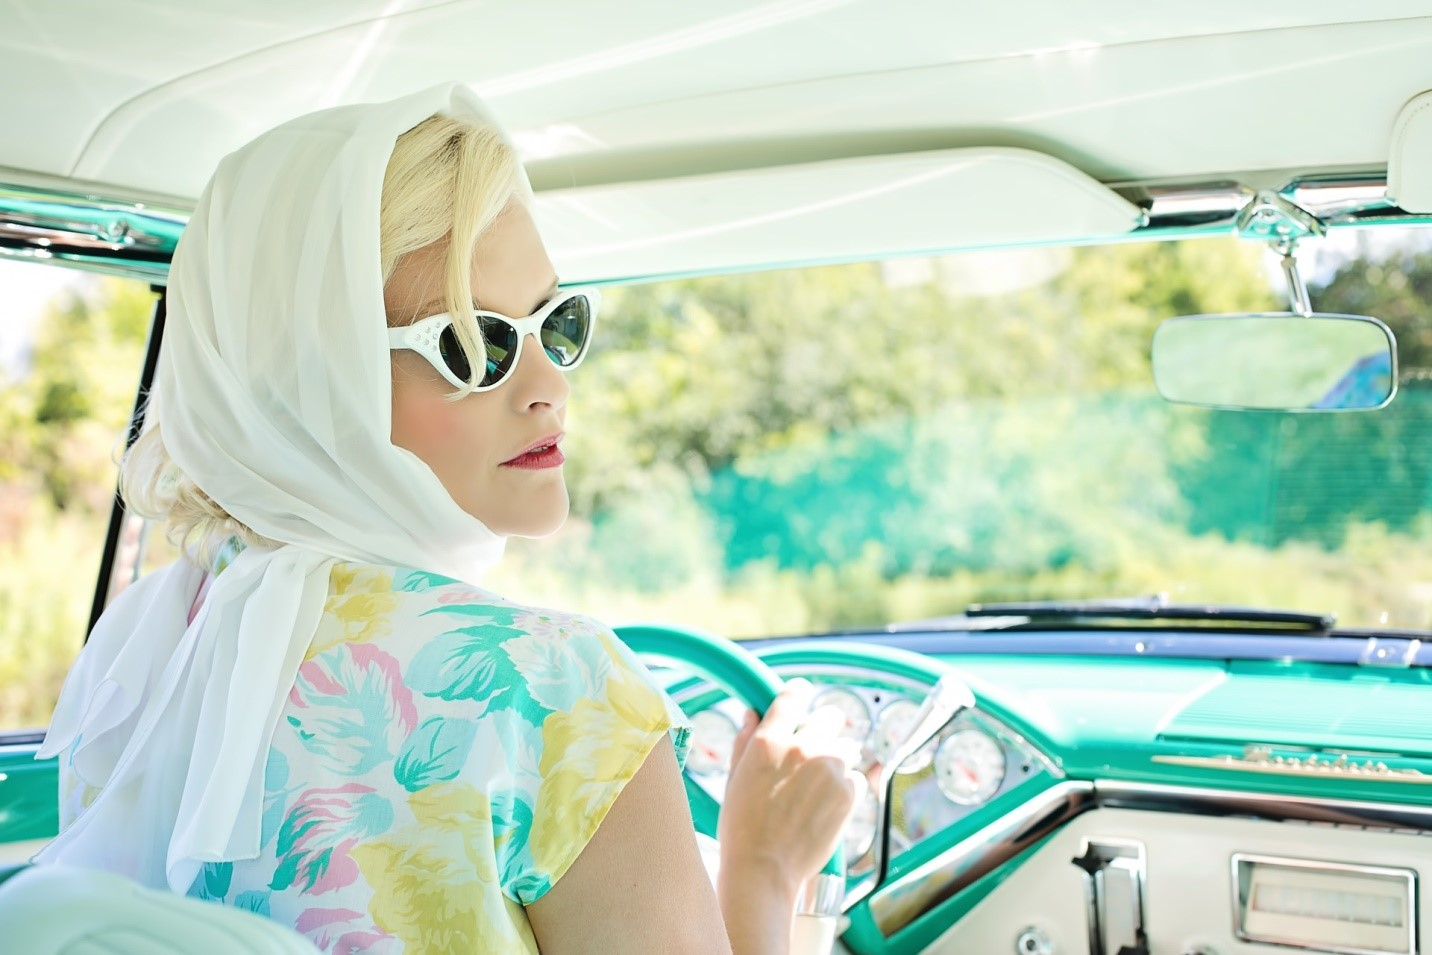 How Can You Keep Hair In Place When In A Convertible Car?